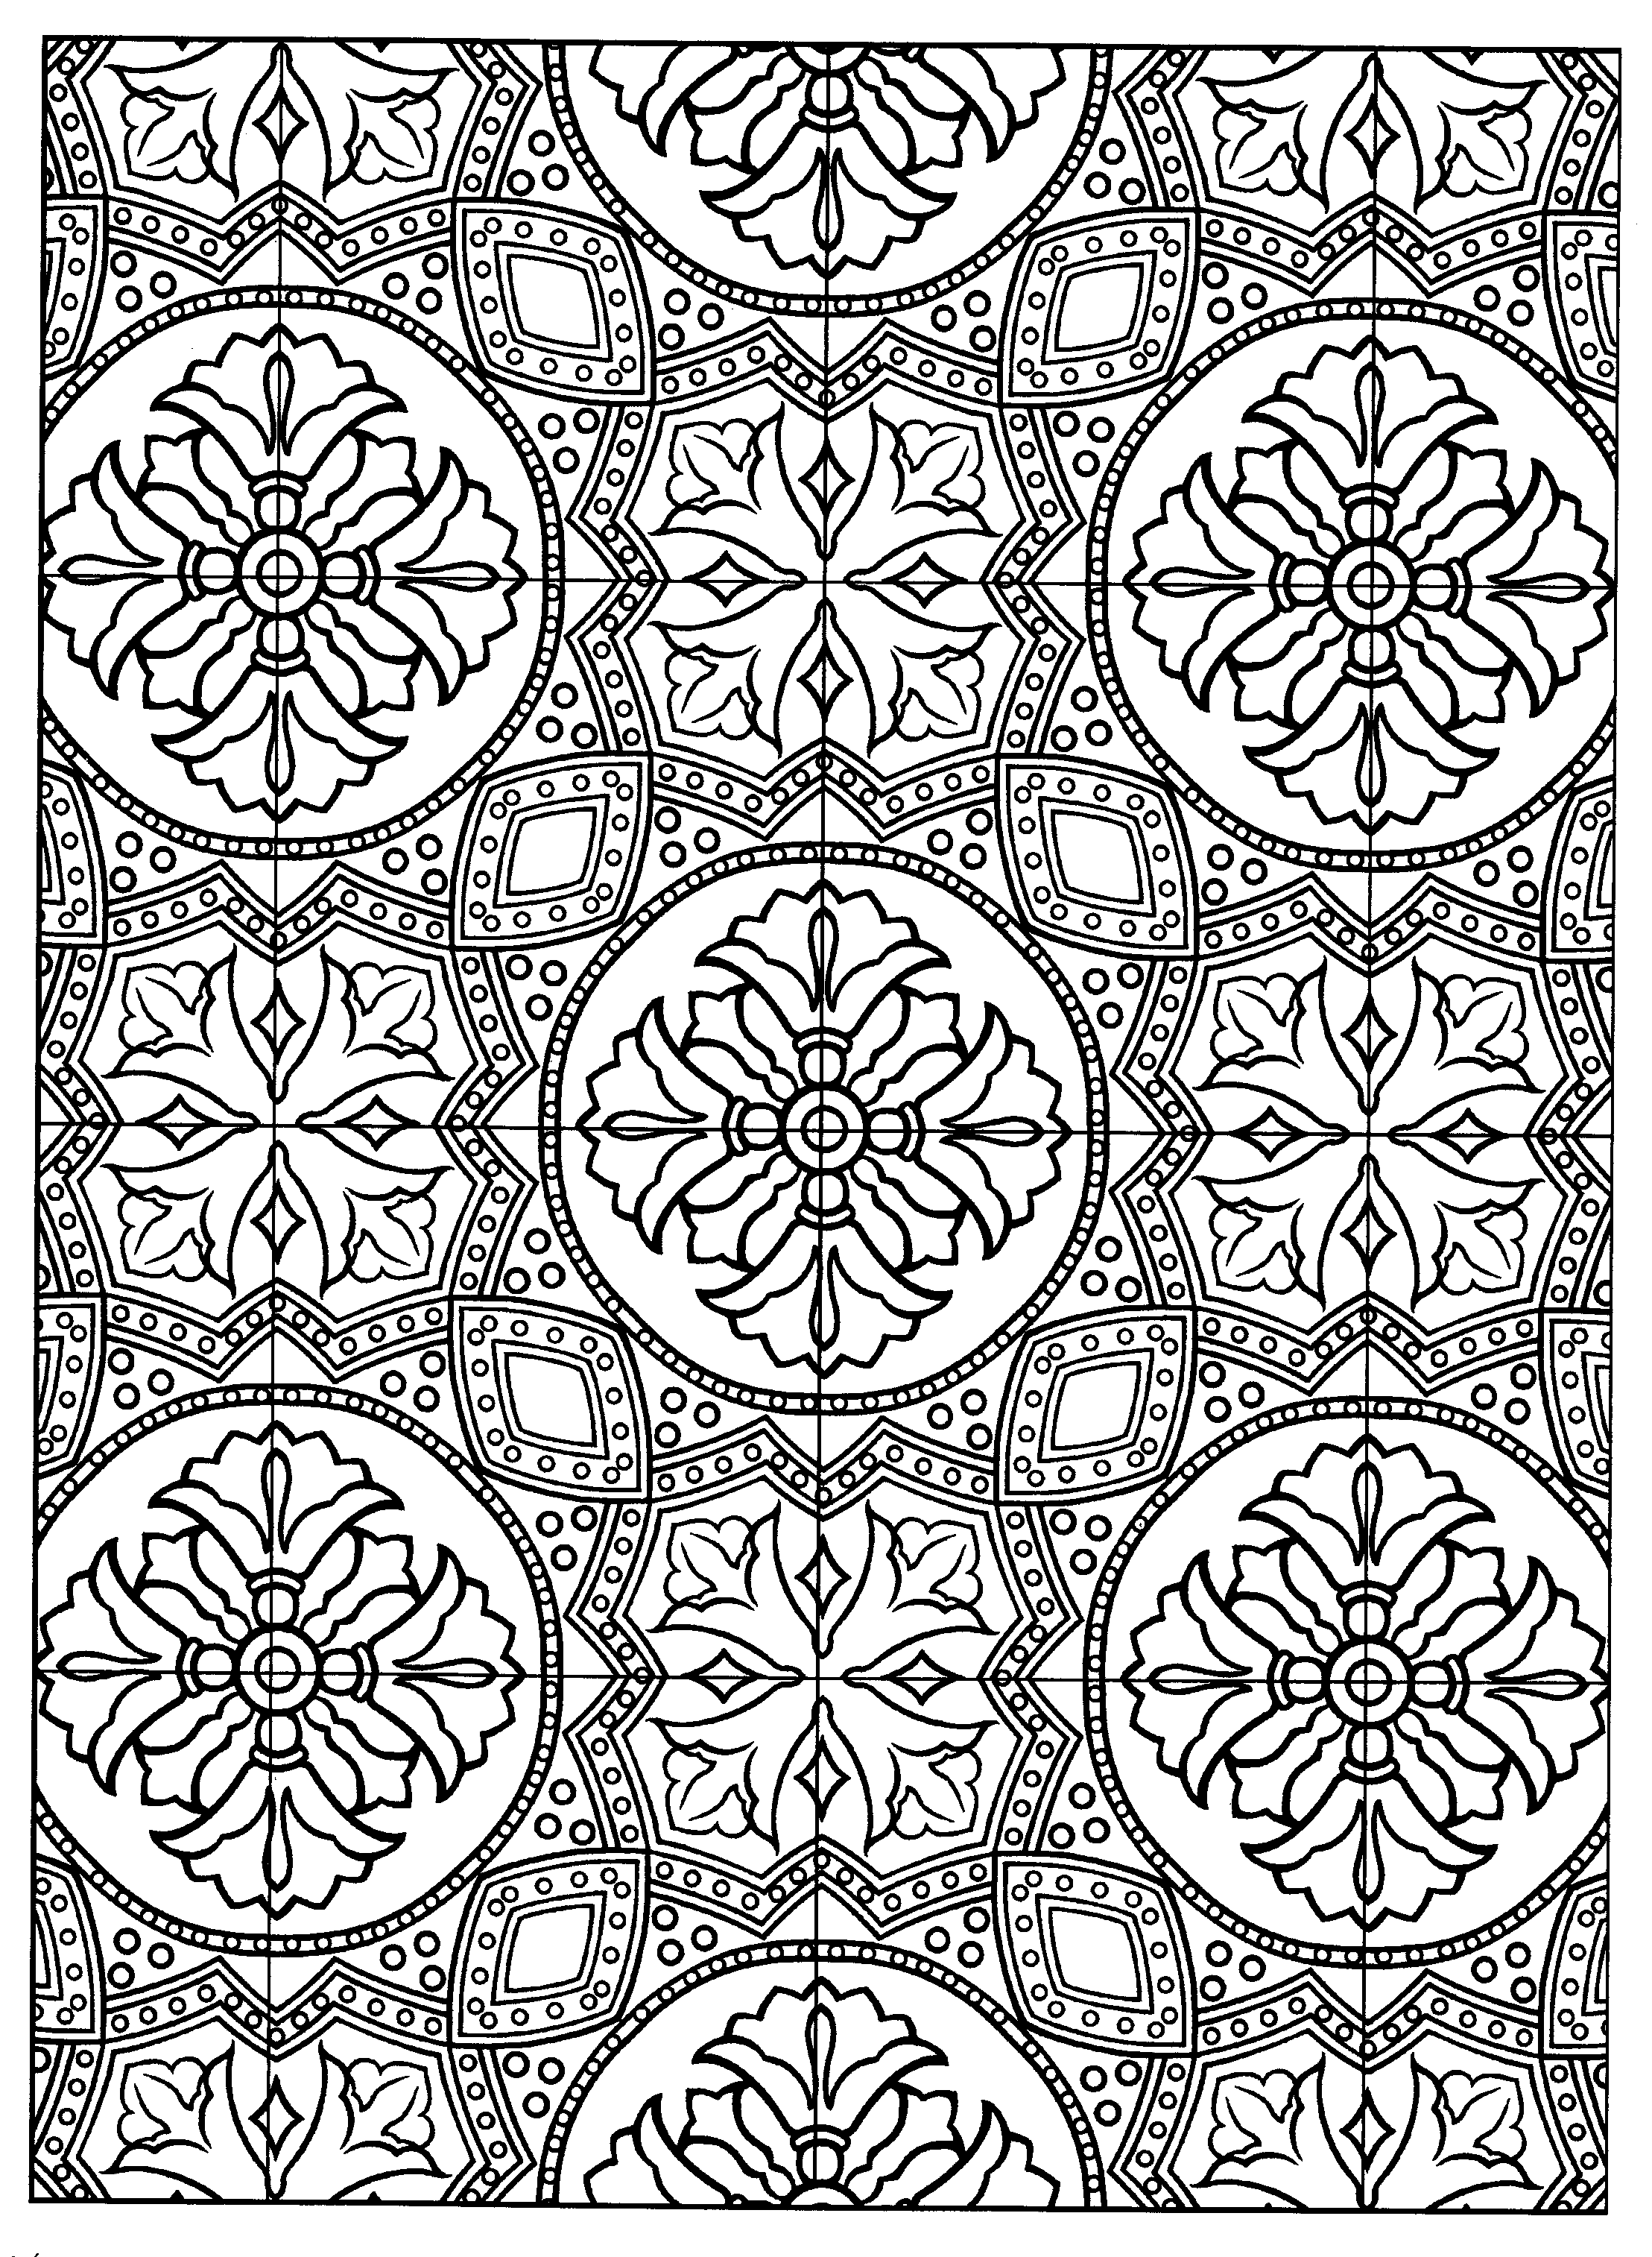 Decorative Tile Patterns Page 14 From Decorative Tile Designsmarty Noble  Coloring